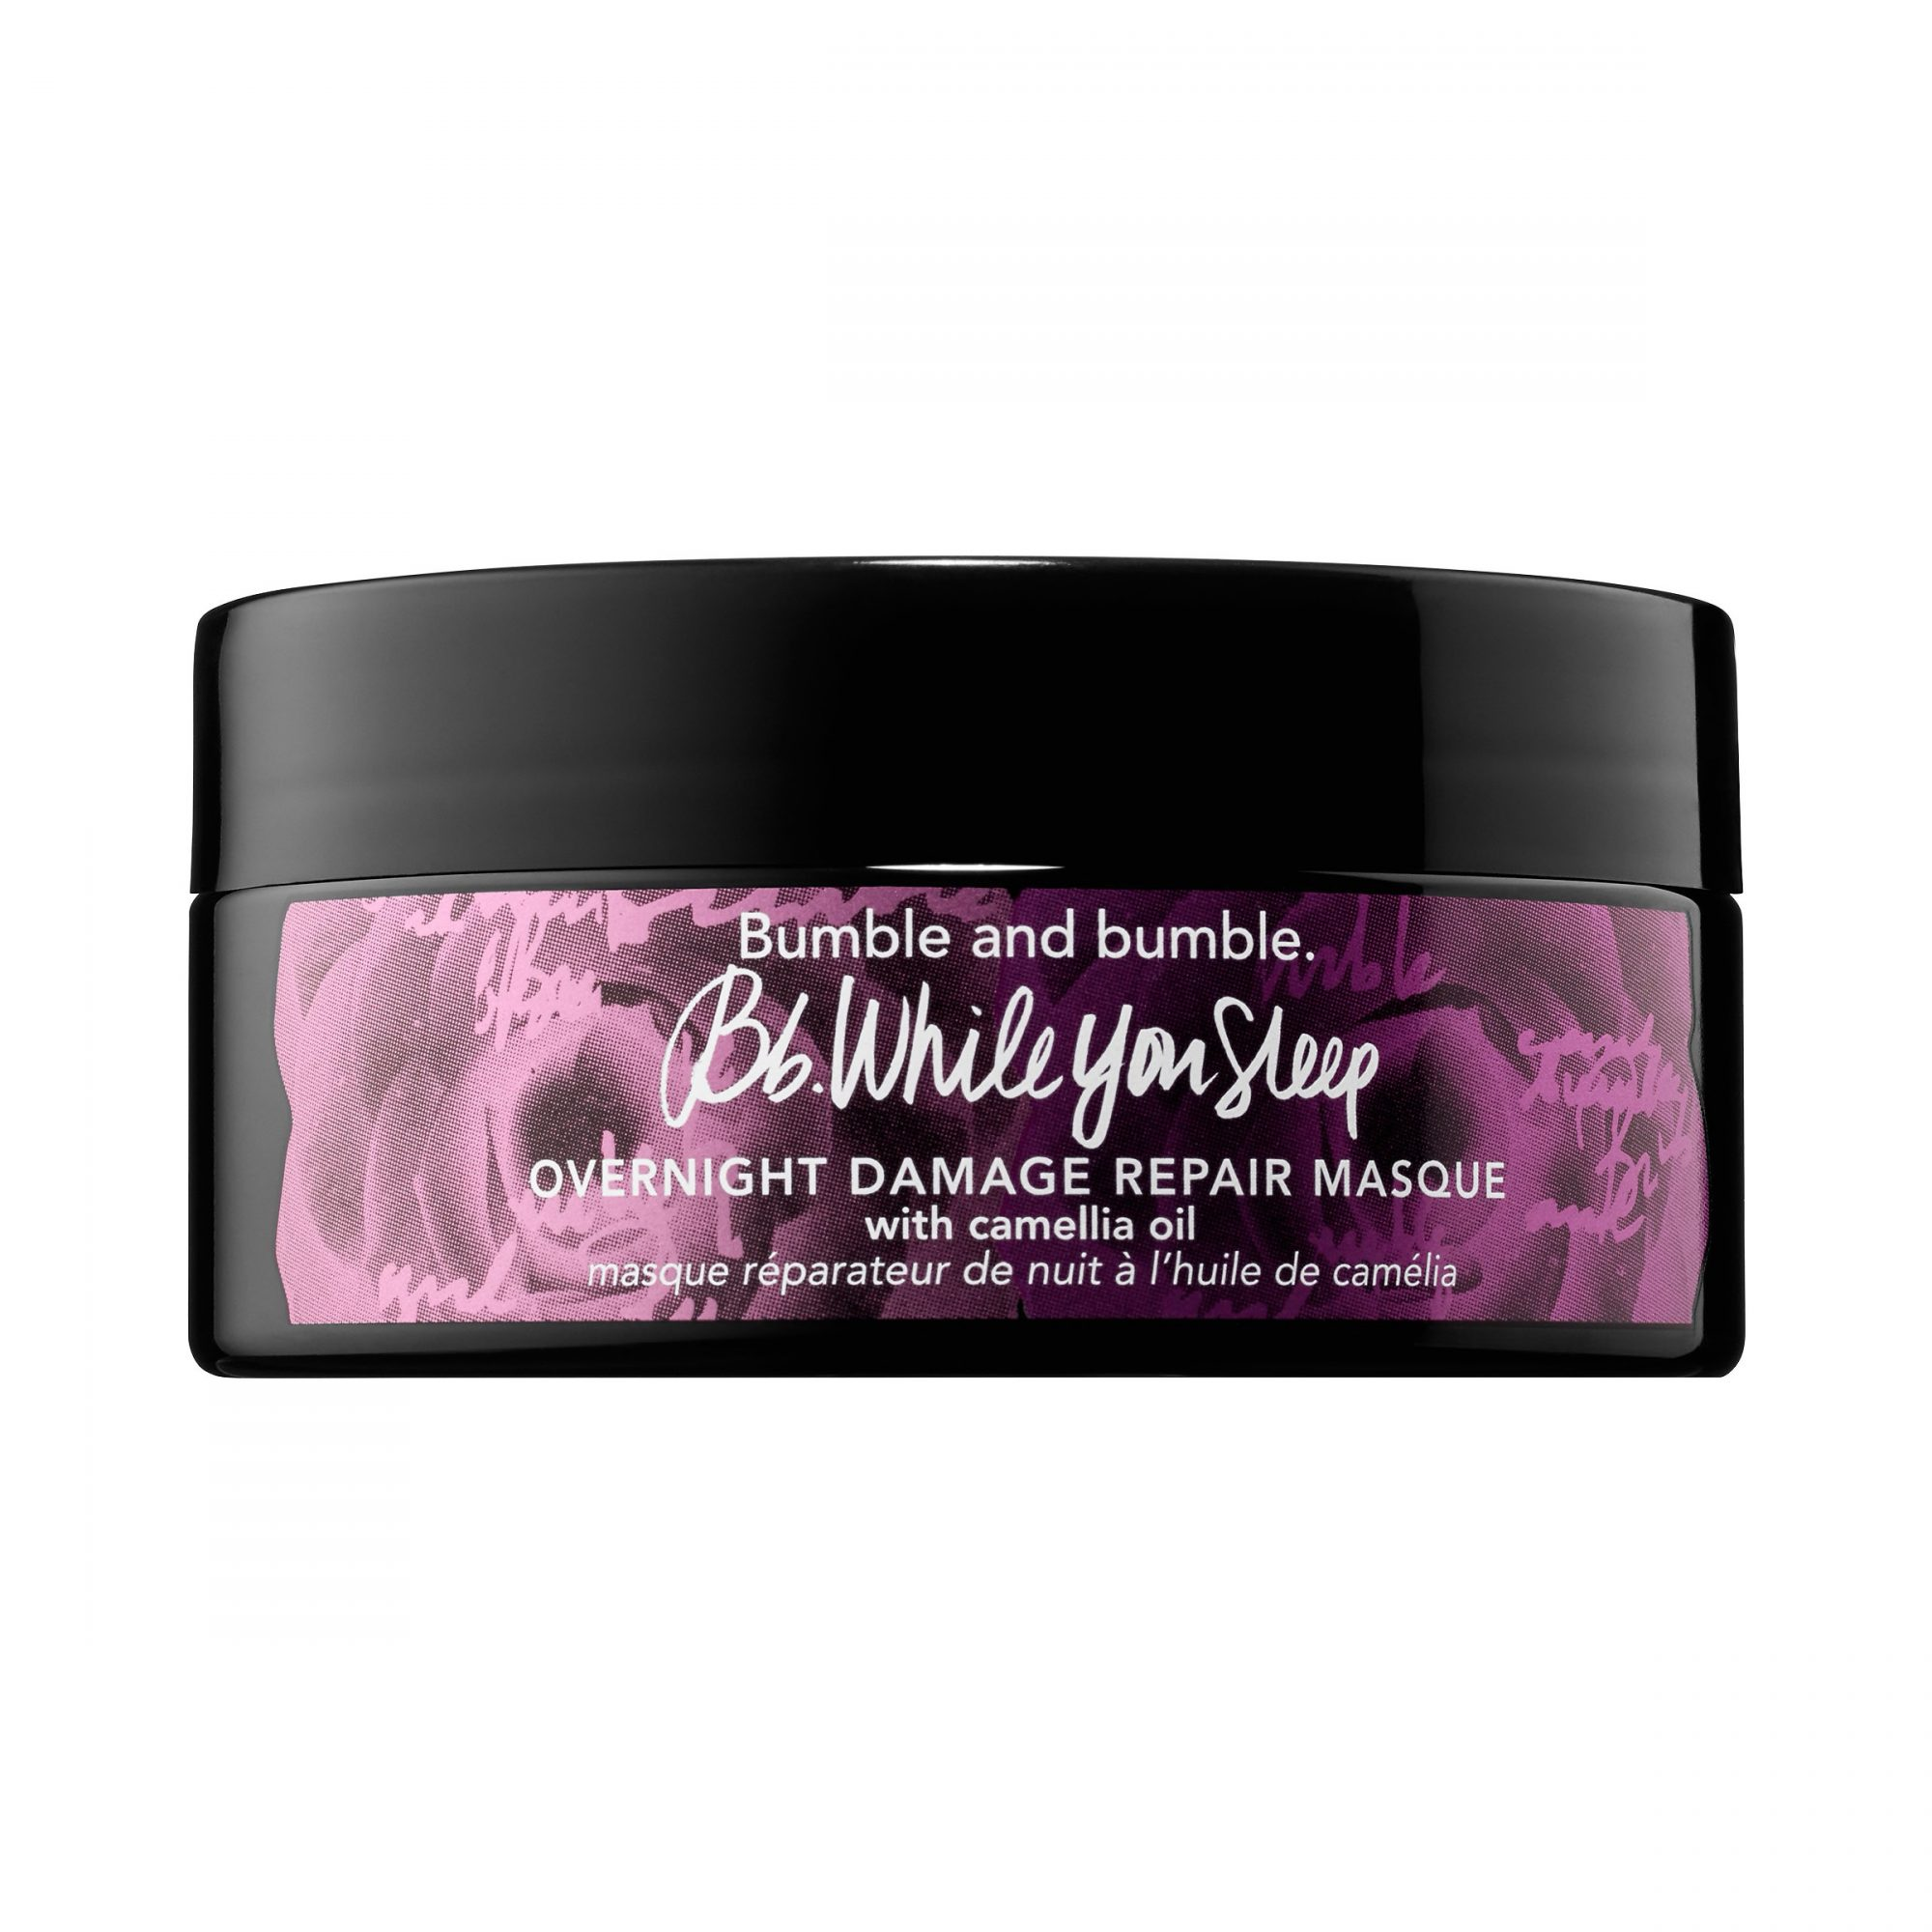 Bumble and bumble While You Sleep Overnight Damage Repair Masque